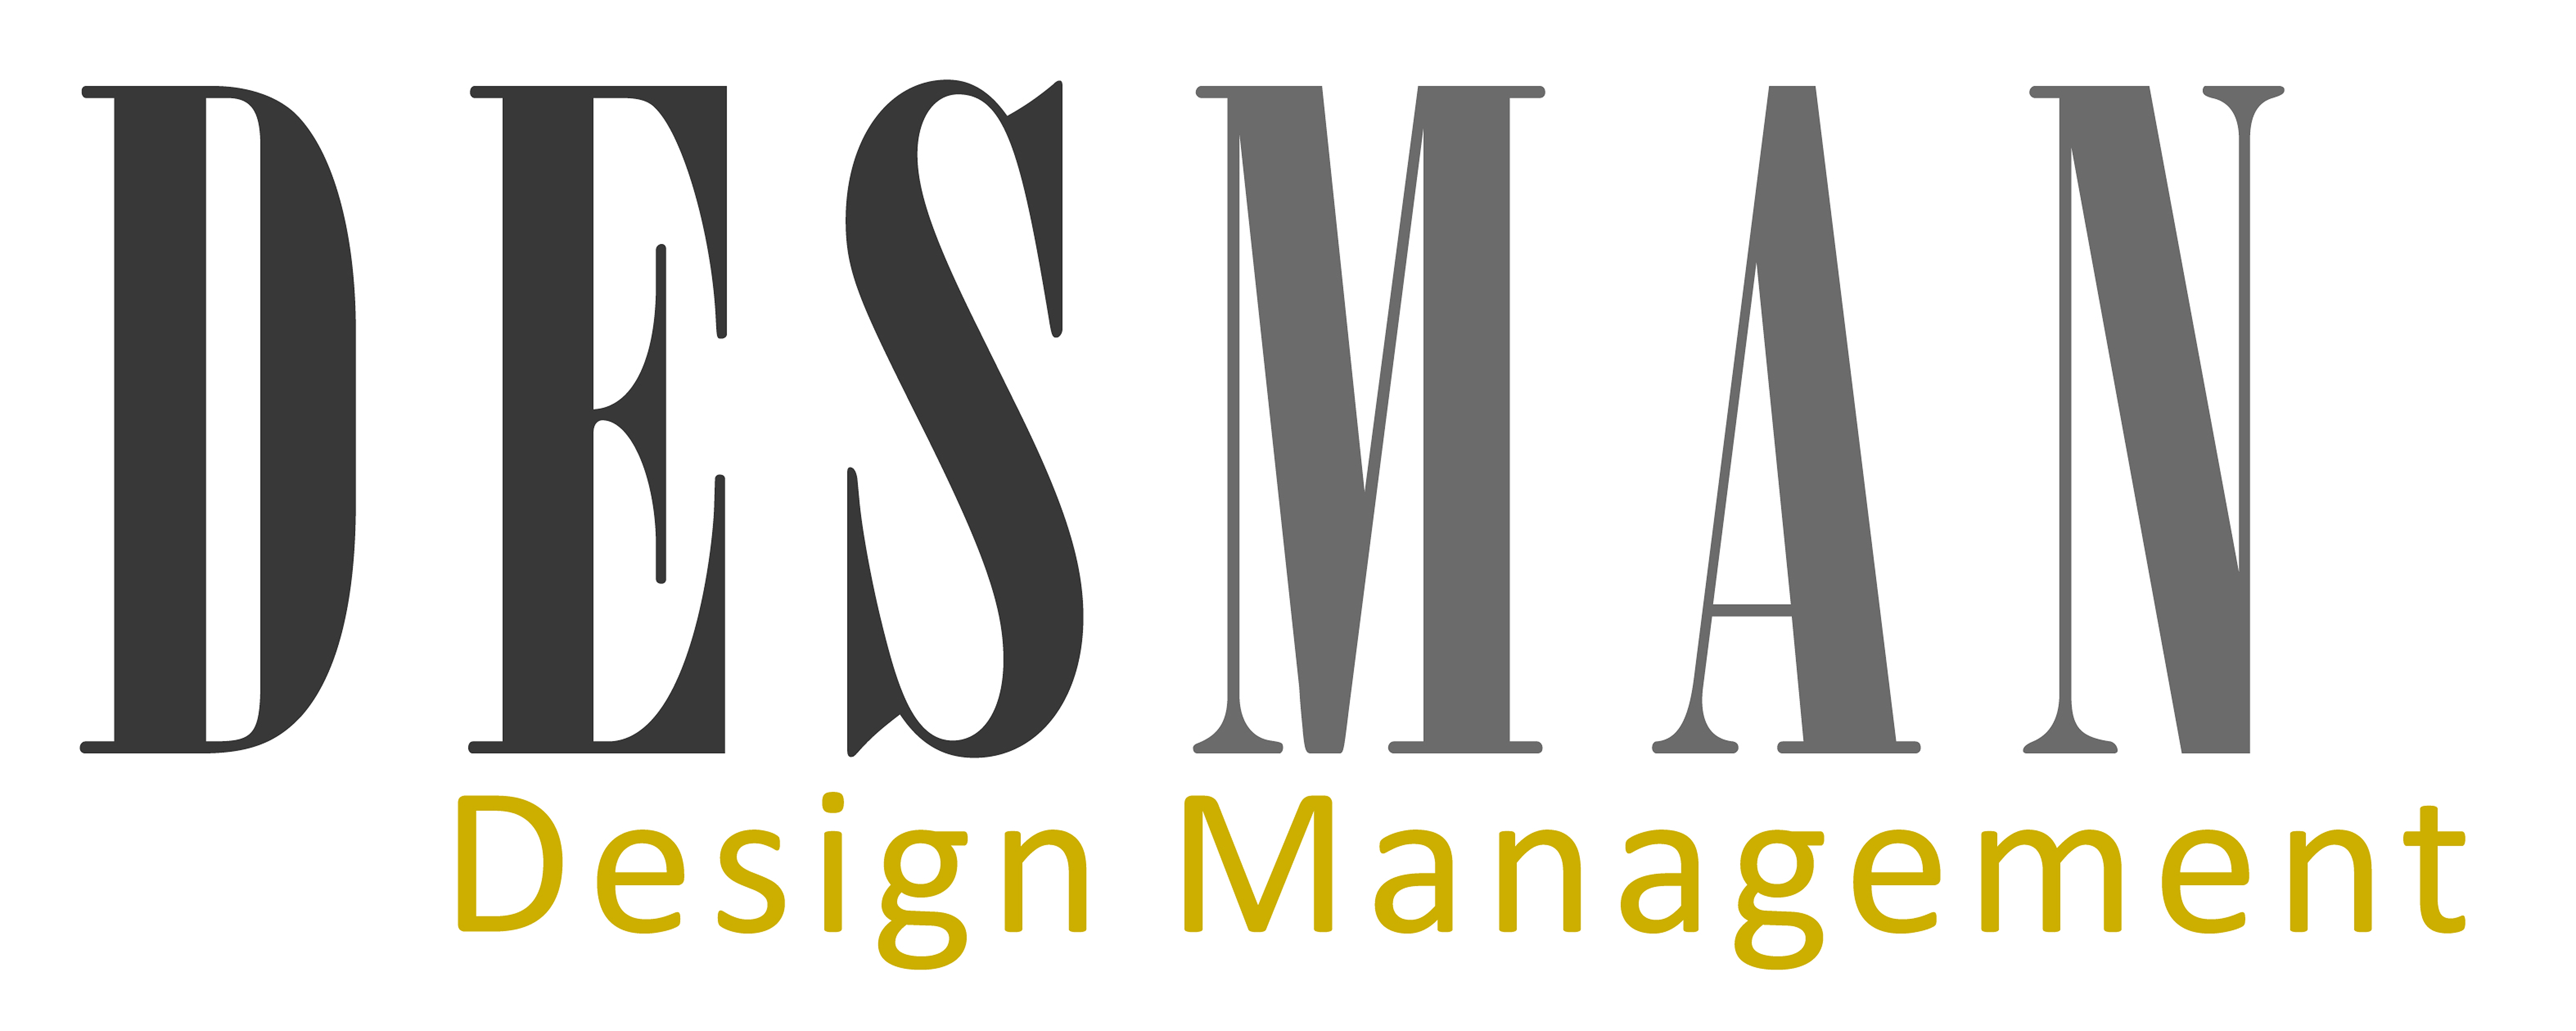 DESMAN Design Management